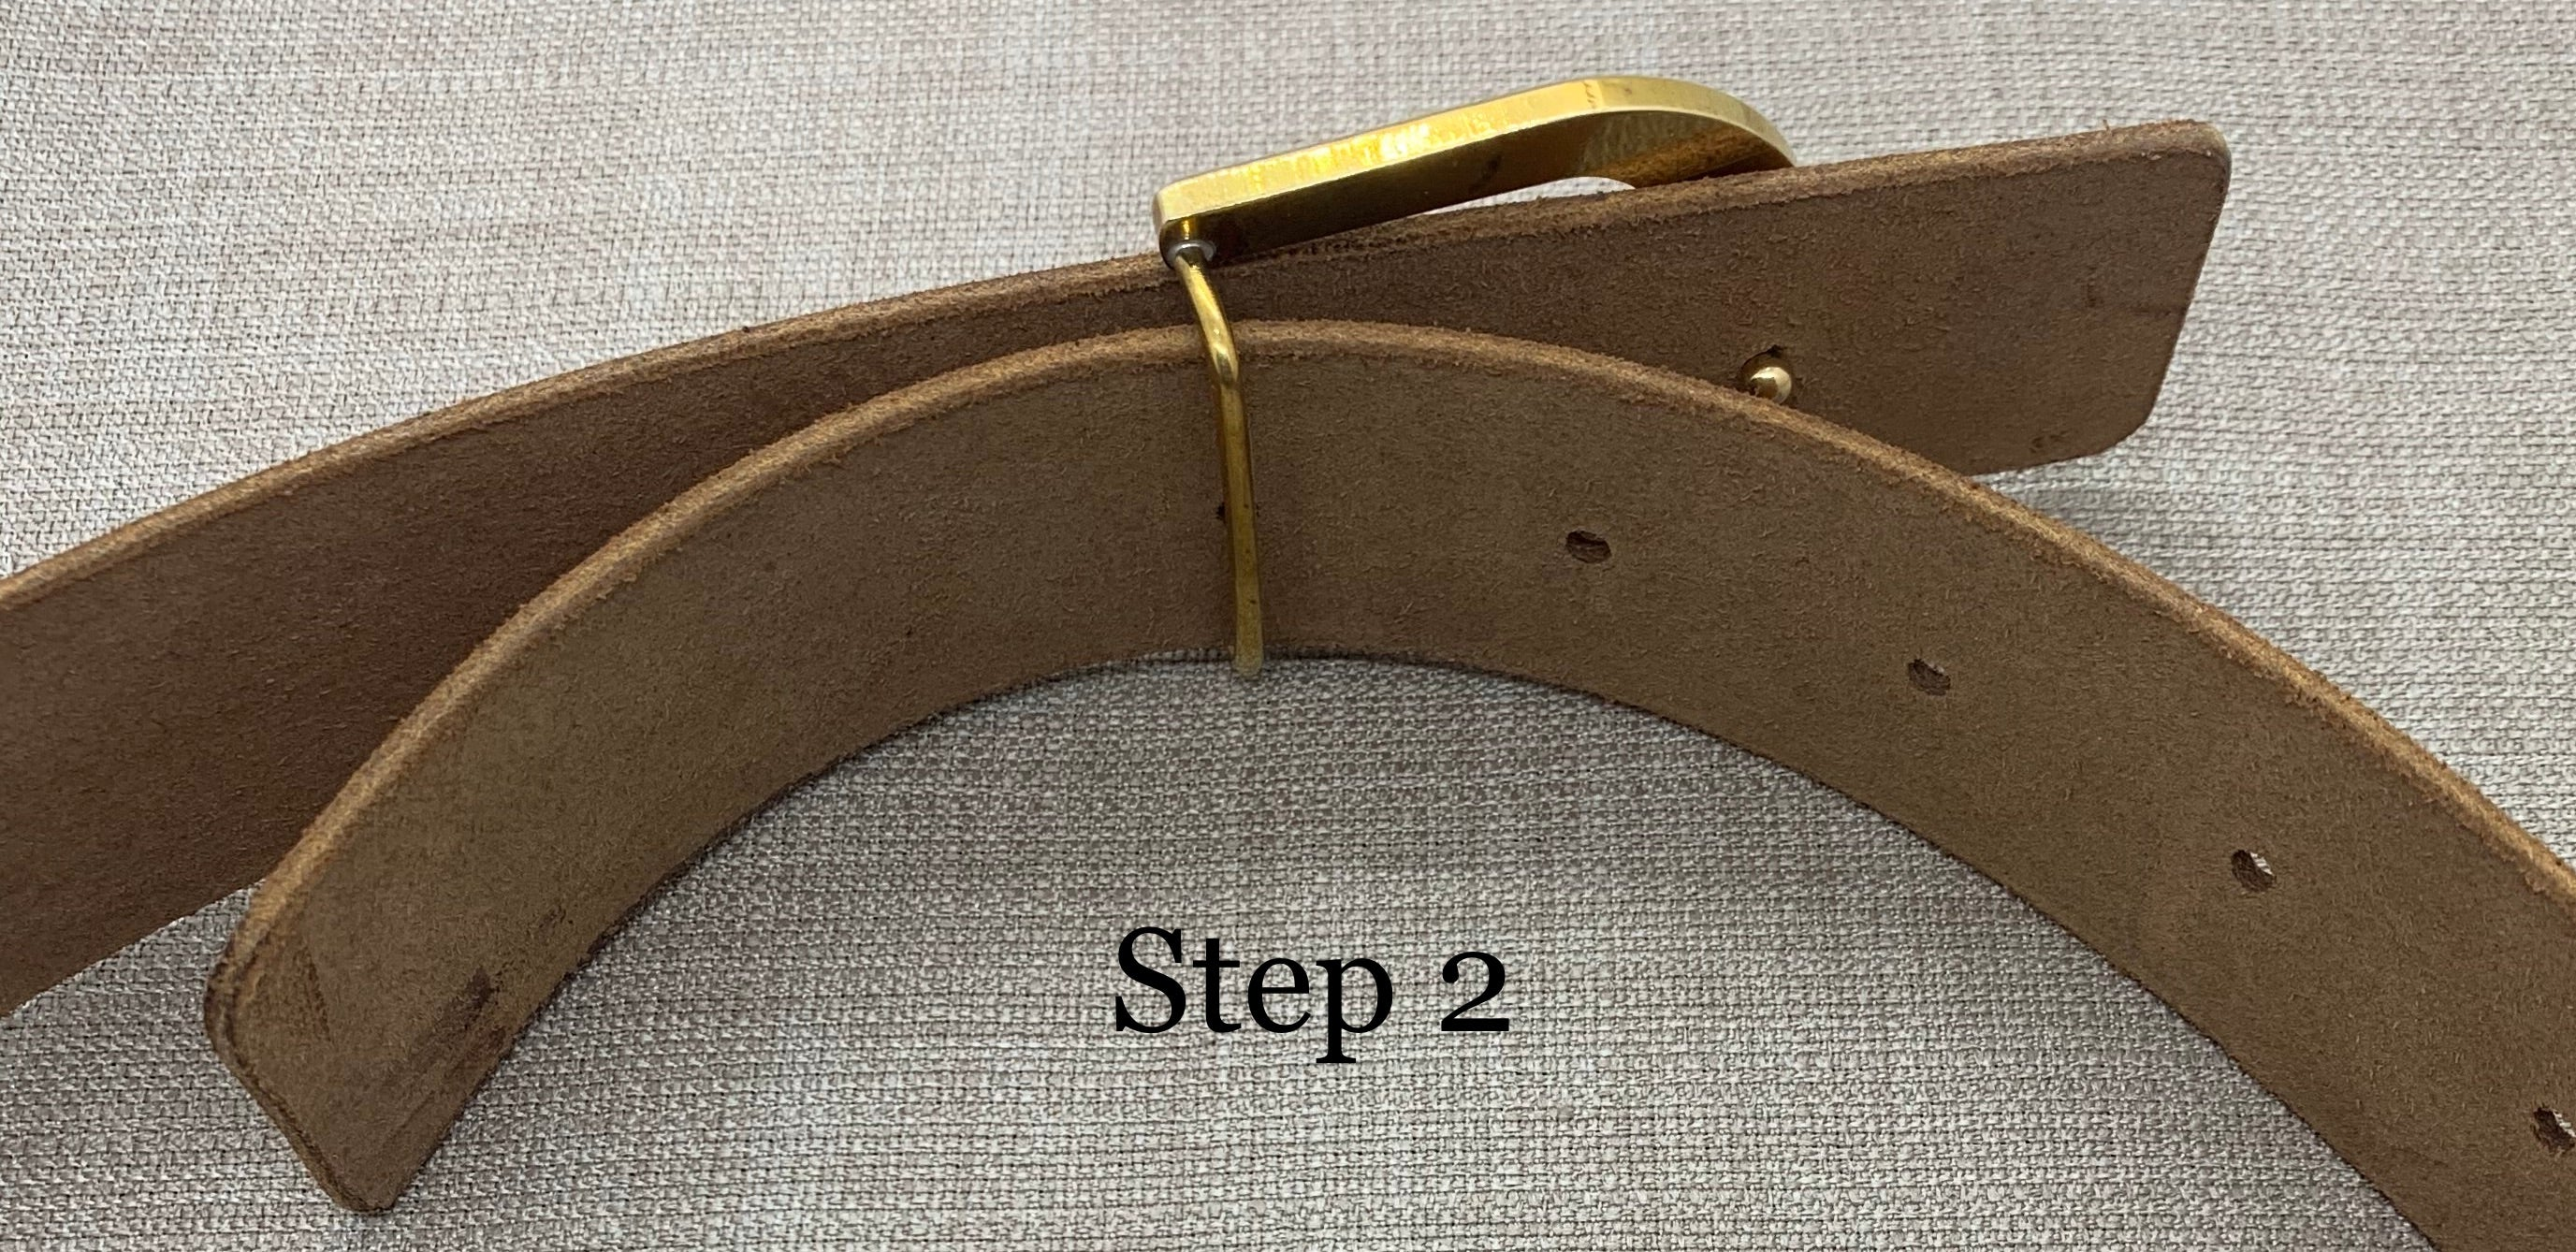 Birchwood Leather Tan 100% Vegetable Tanned Leather Belt with Solid Brass Buckle